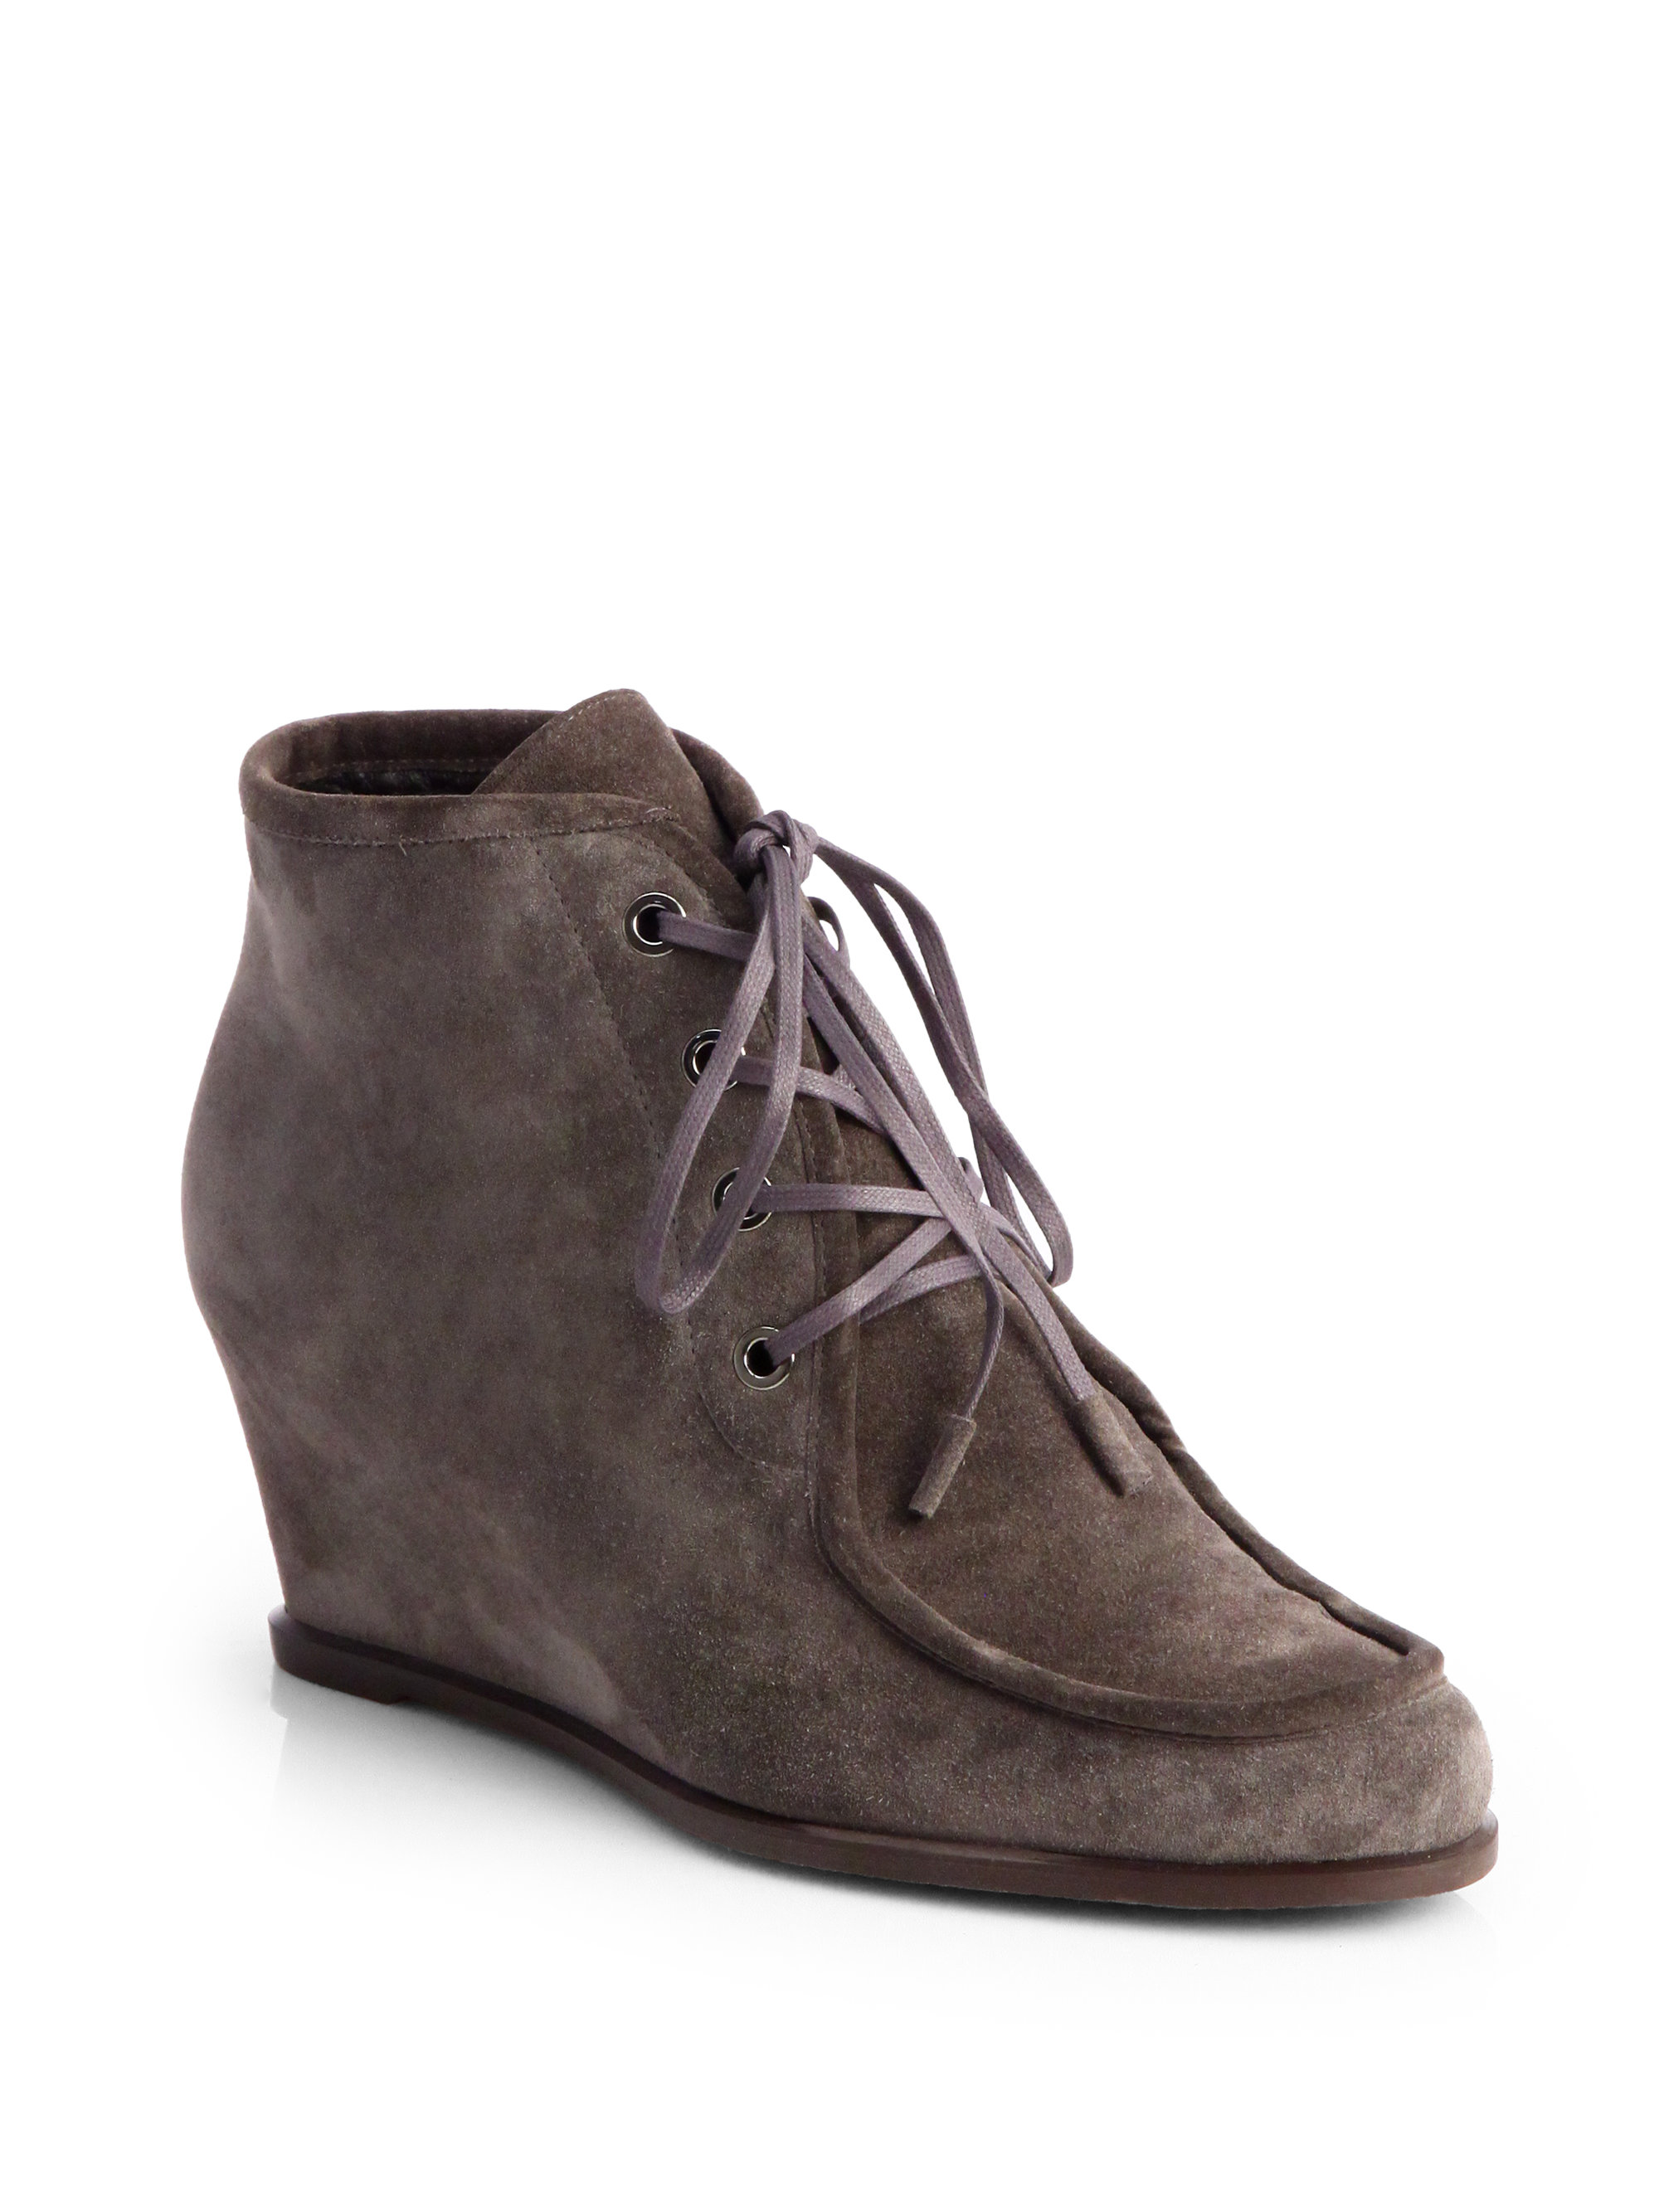 stuart weitzman wallop suede laceup wedge ankle boots in